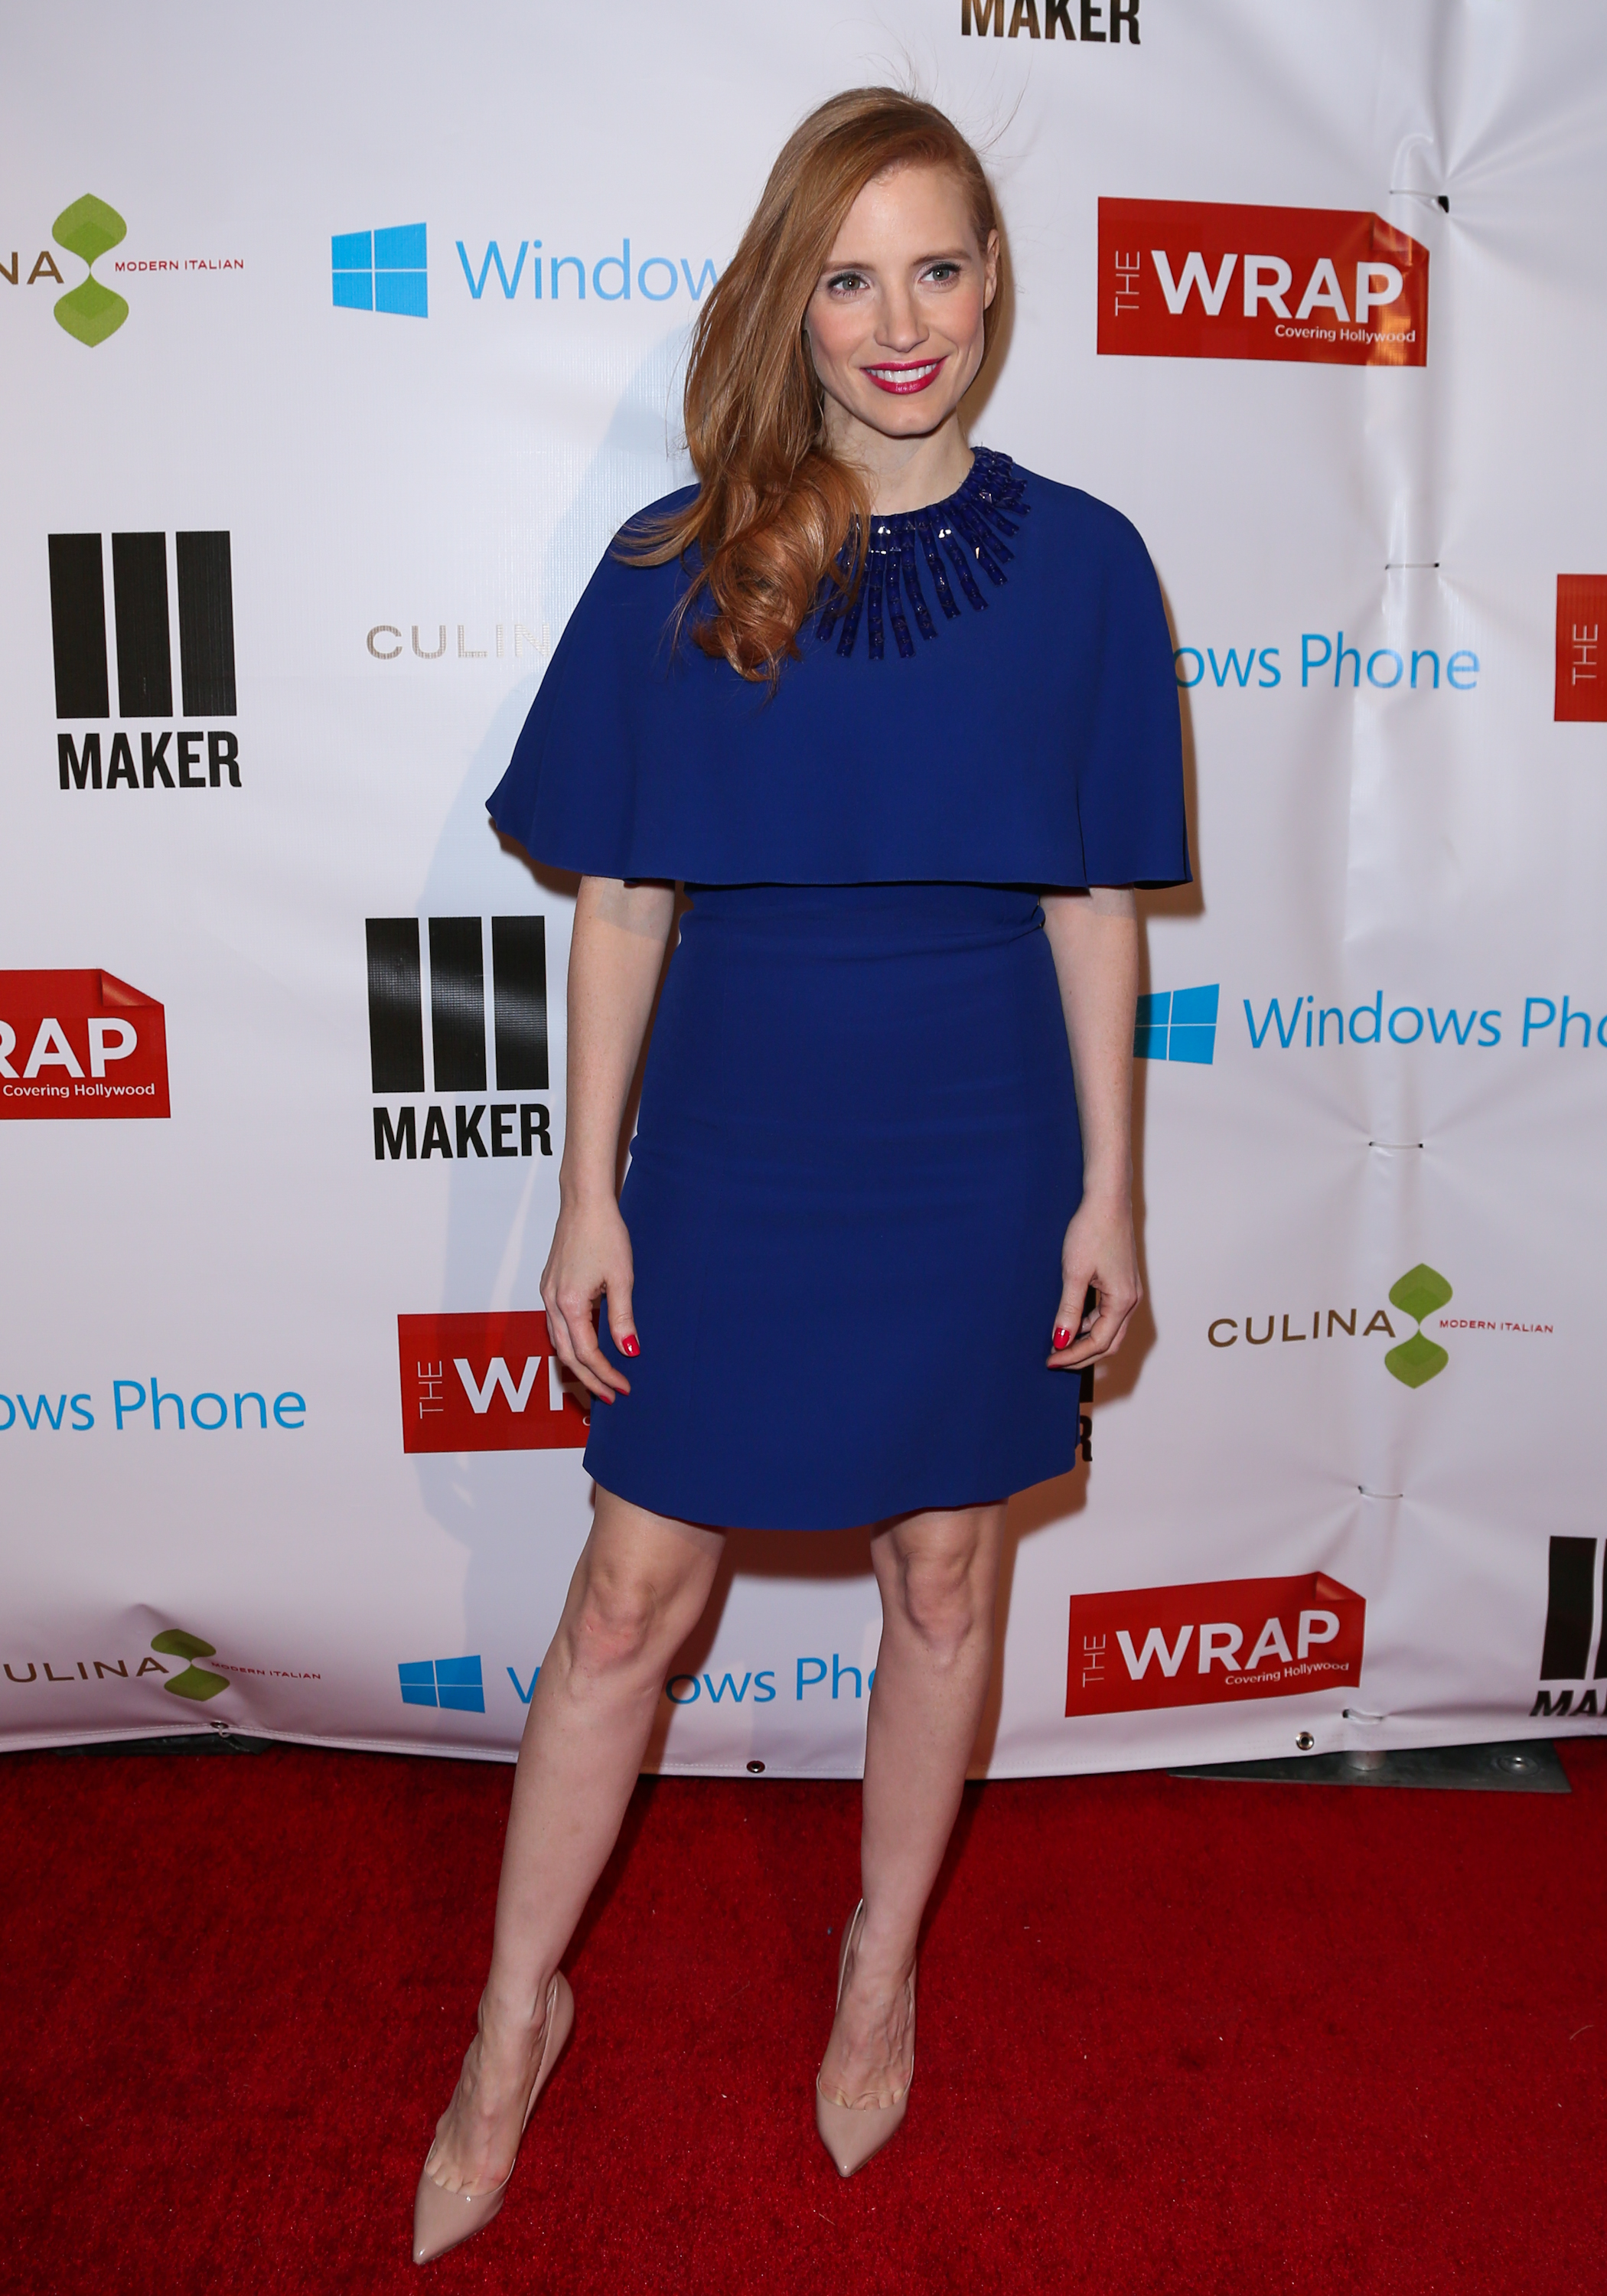 Jessica Chastain at TheWrap's pre-Oscars party in Los Angeles.